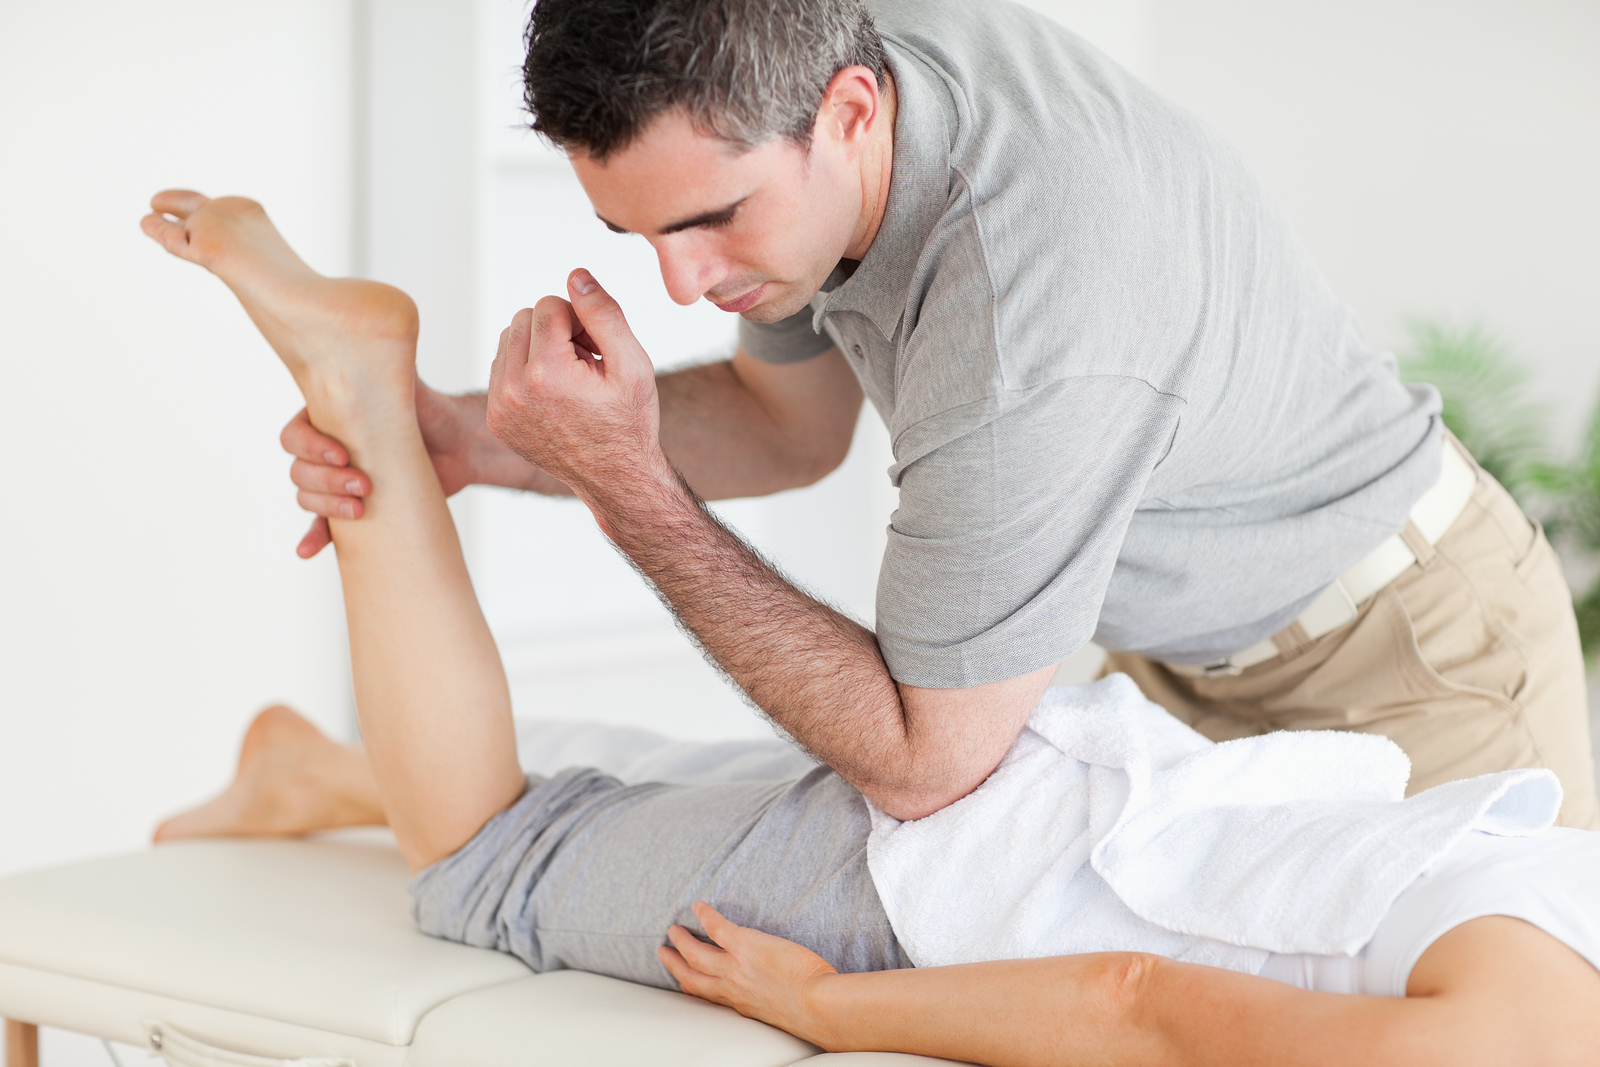 Sciatica Treatment from Our Chiropractor in Manhattan